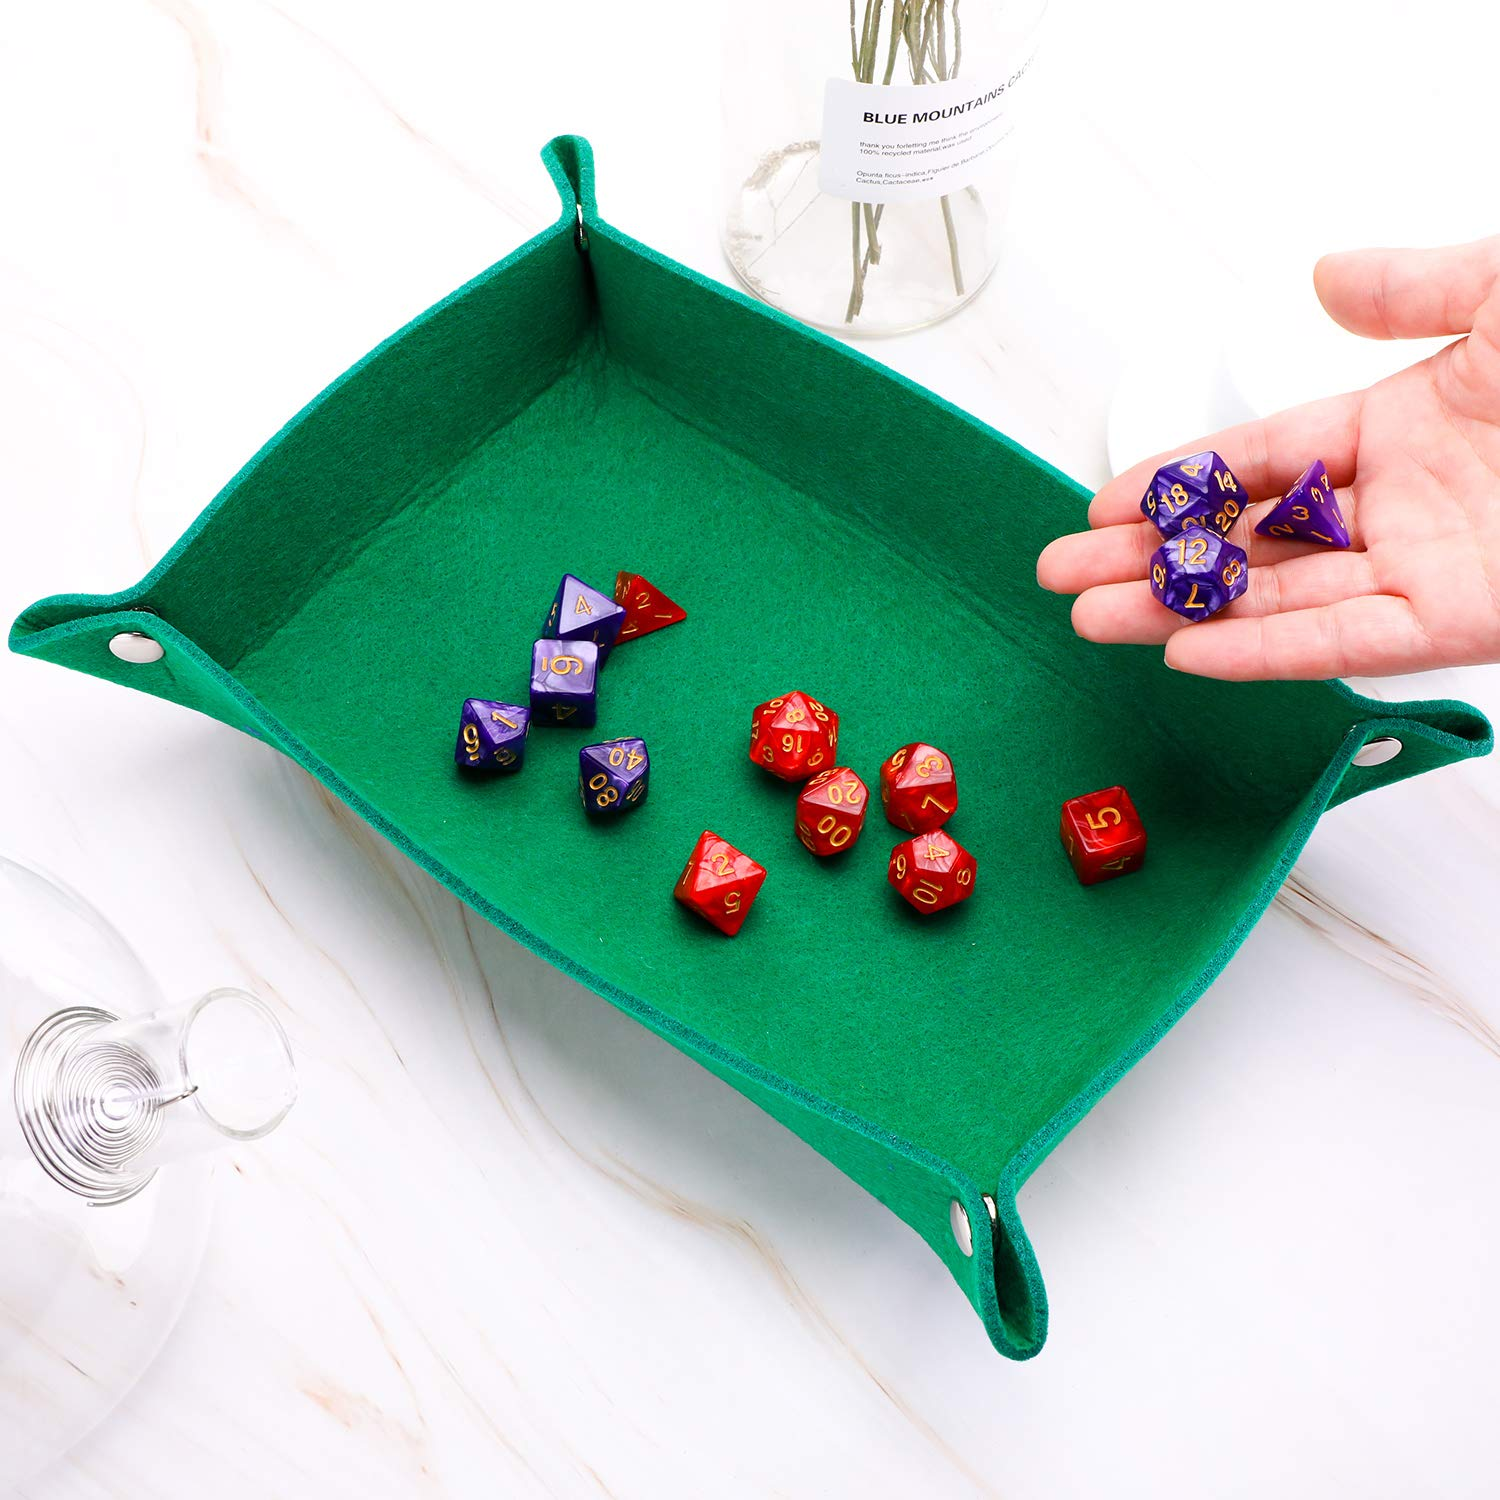 5 Colors Zhanmai 5 Pieces Dice Tray Felt Folding Rectangle Dice Holder for RPG DND Dice Games Storage